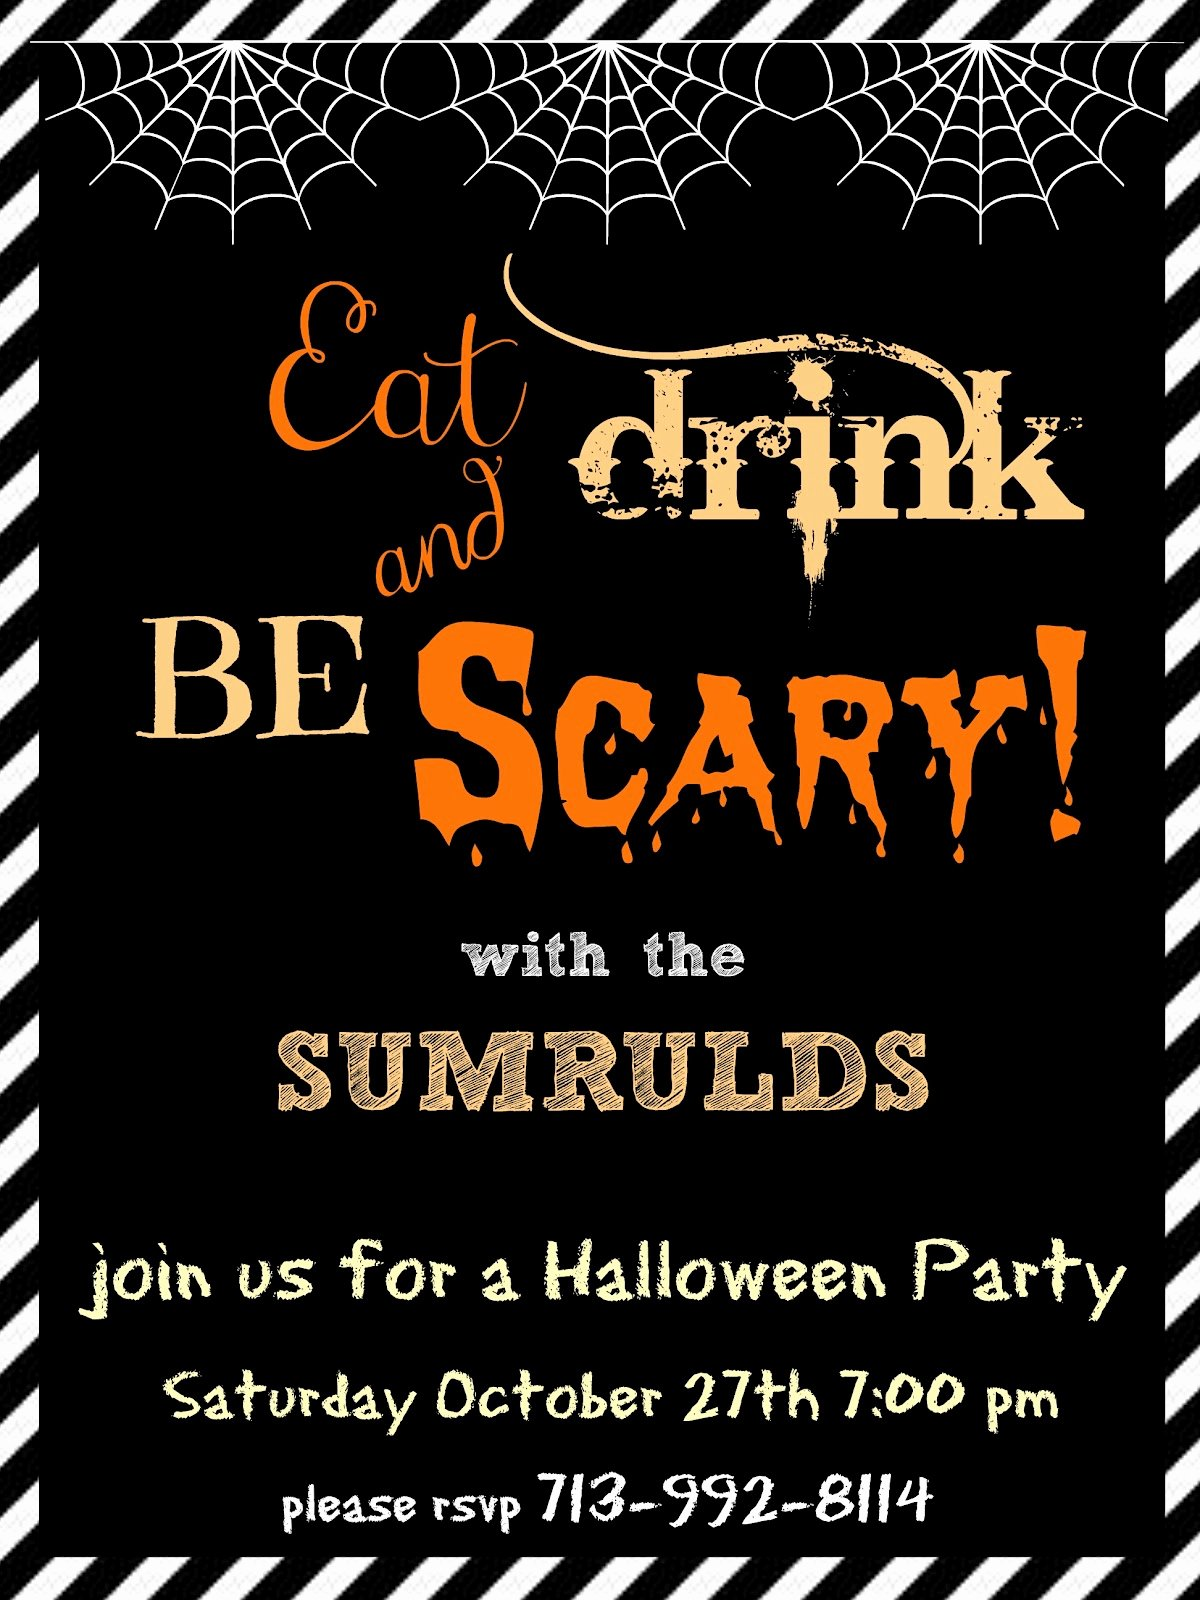 Halloween Party Invitations Template New Halloween Party Invitations Templates – Festival Collections